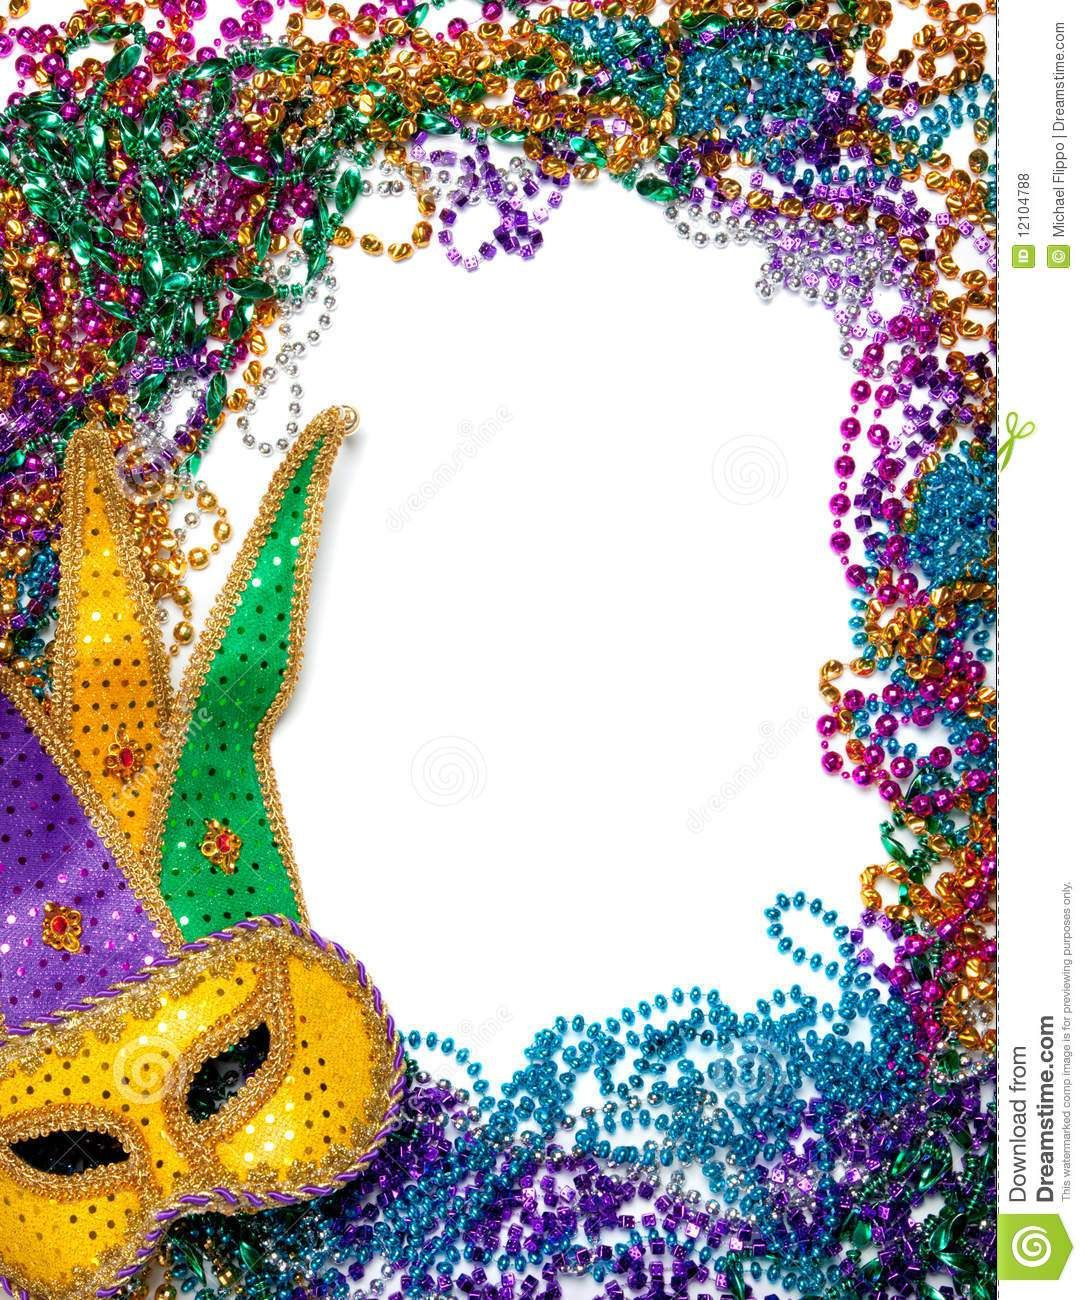 Mardi gras framesfree clipart colors banner black and white library Free Printable Mardi Gras Borders. Royalty Free Stock Photos ... banner black and white library